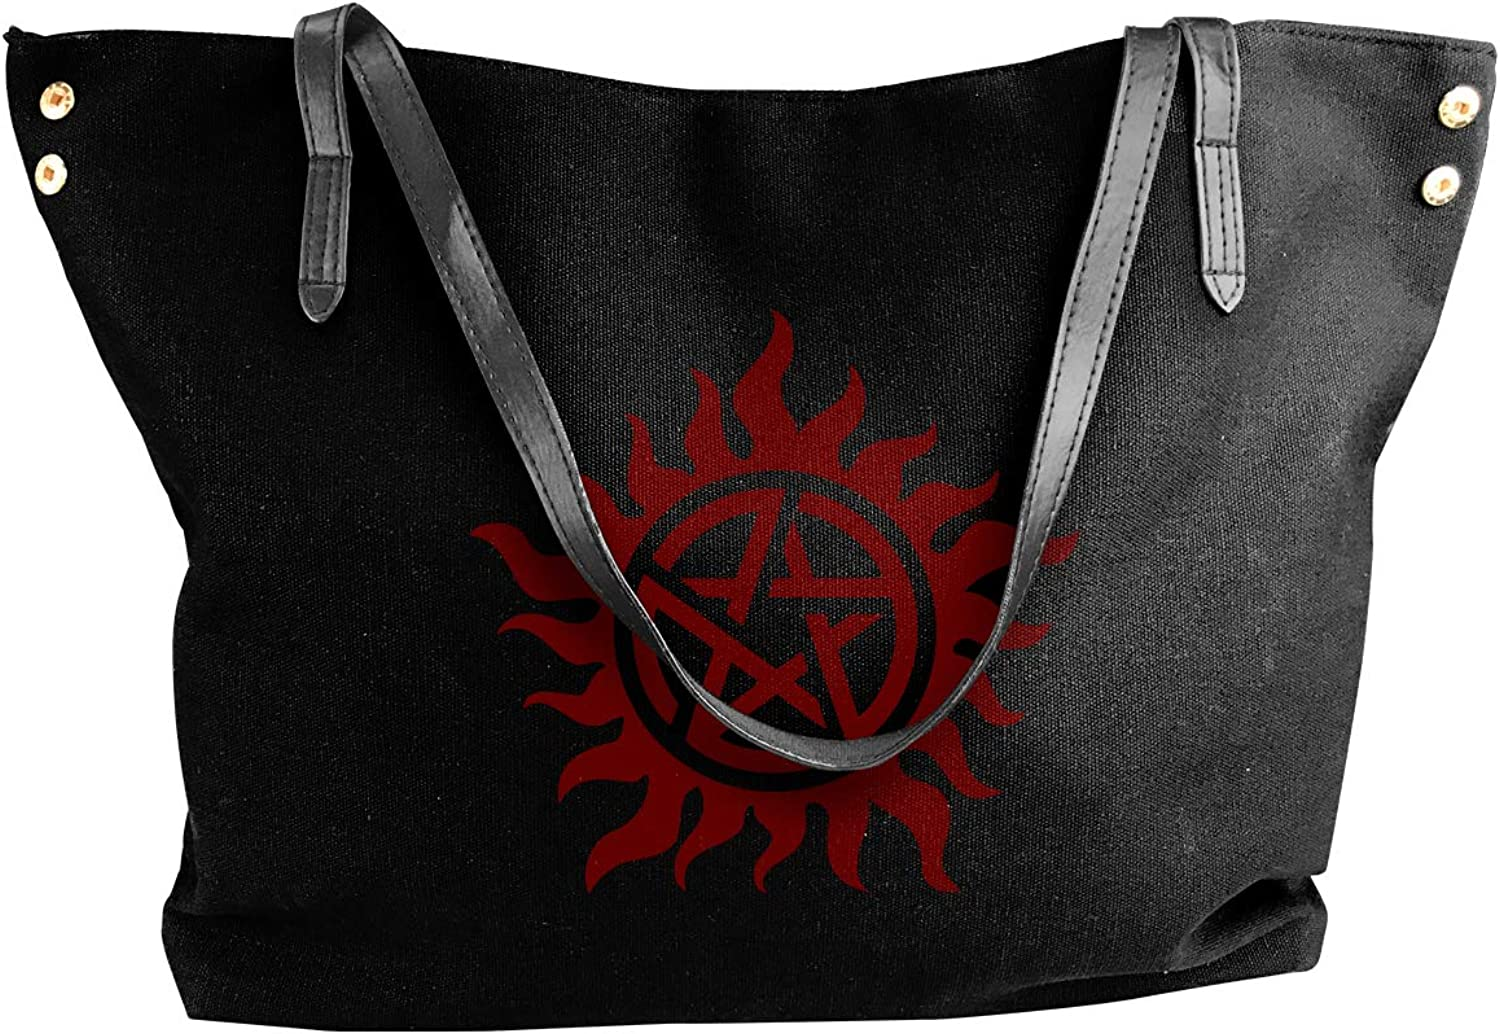 Supernatural Women'S Leisure Canvas Handbag For School Work Bag